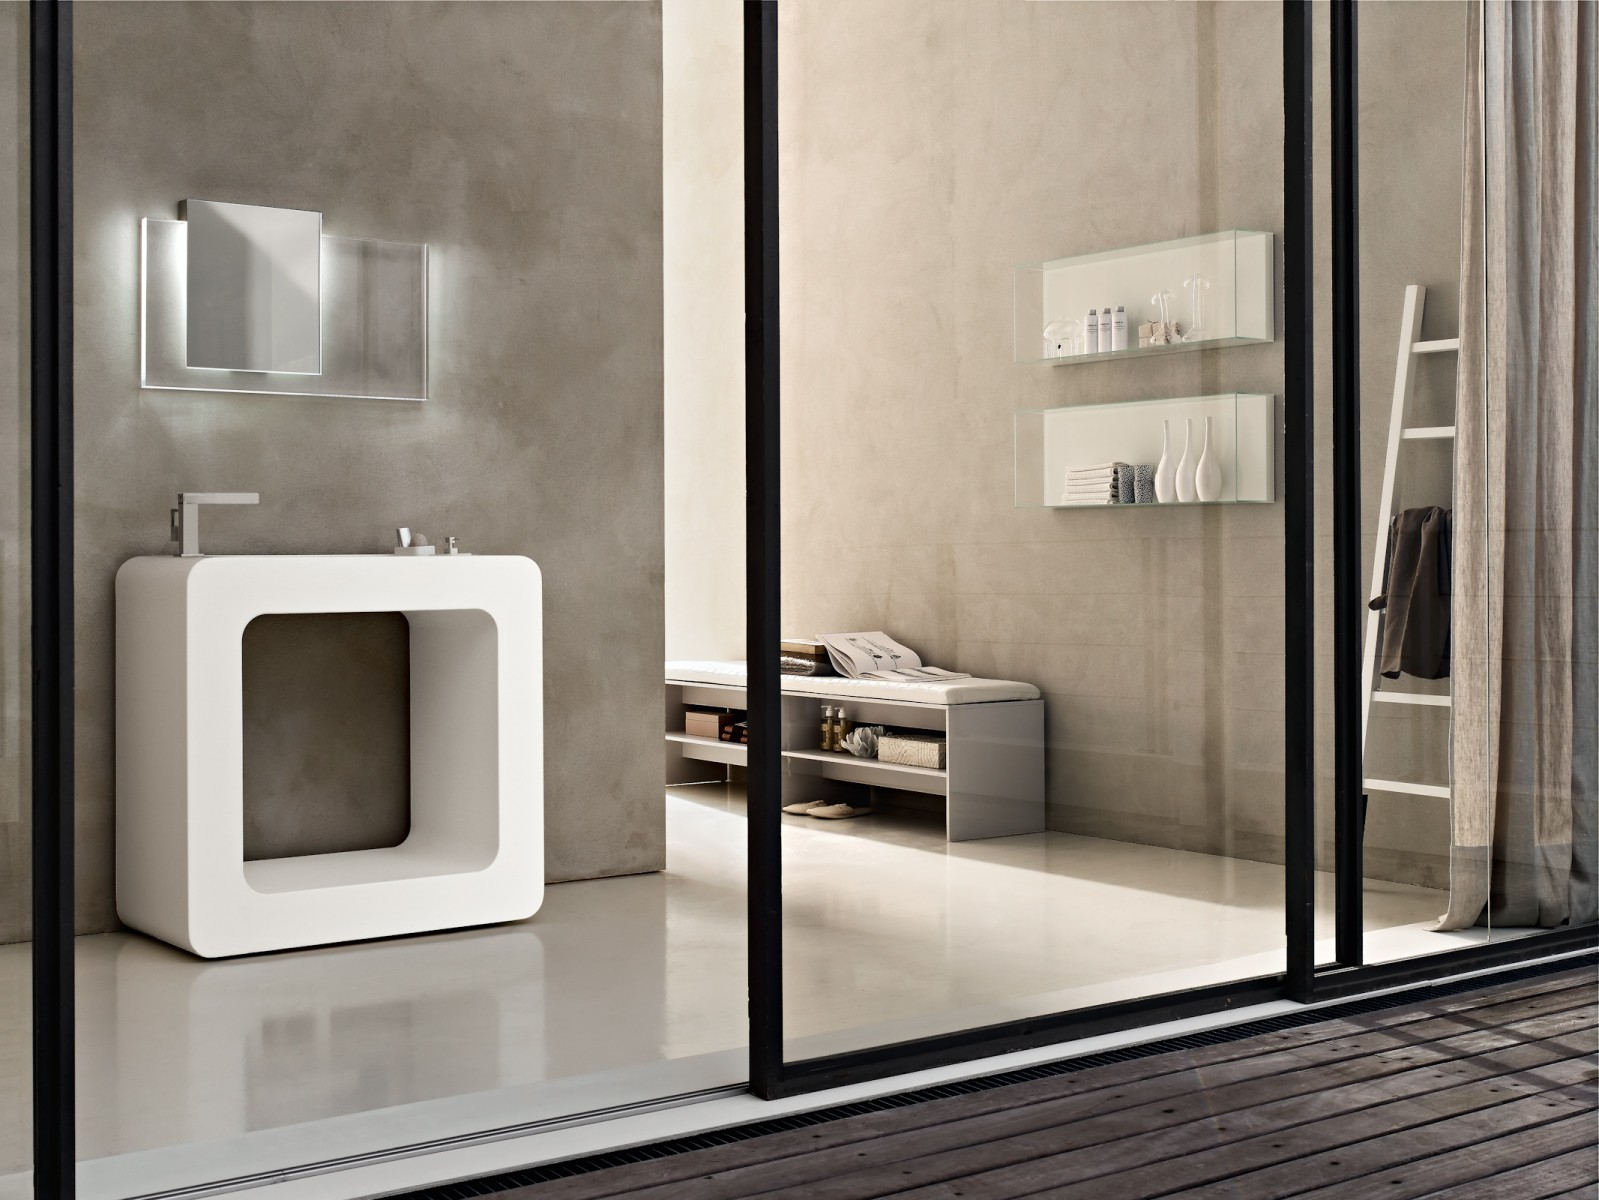 Ultra modern italian bathroom design eventelaan Gallery